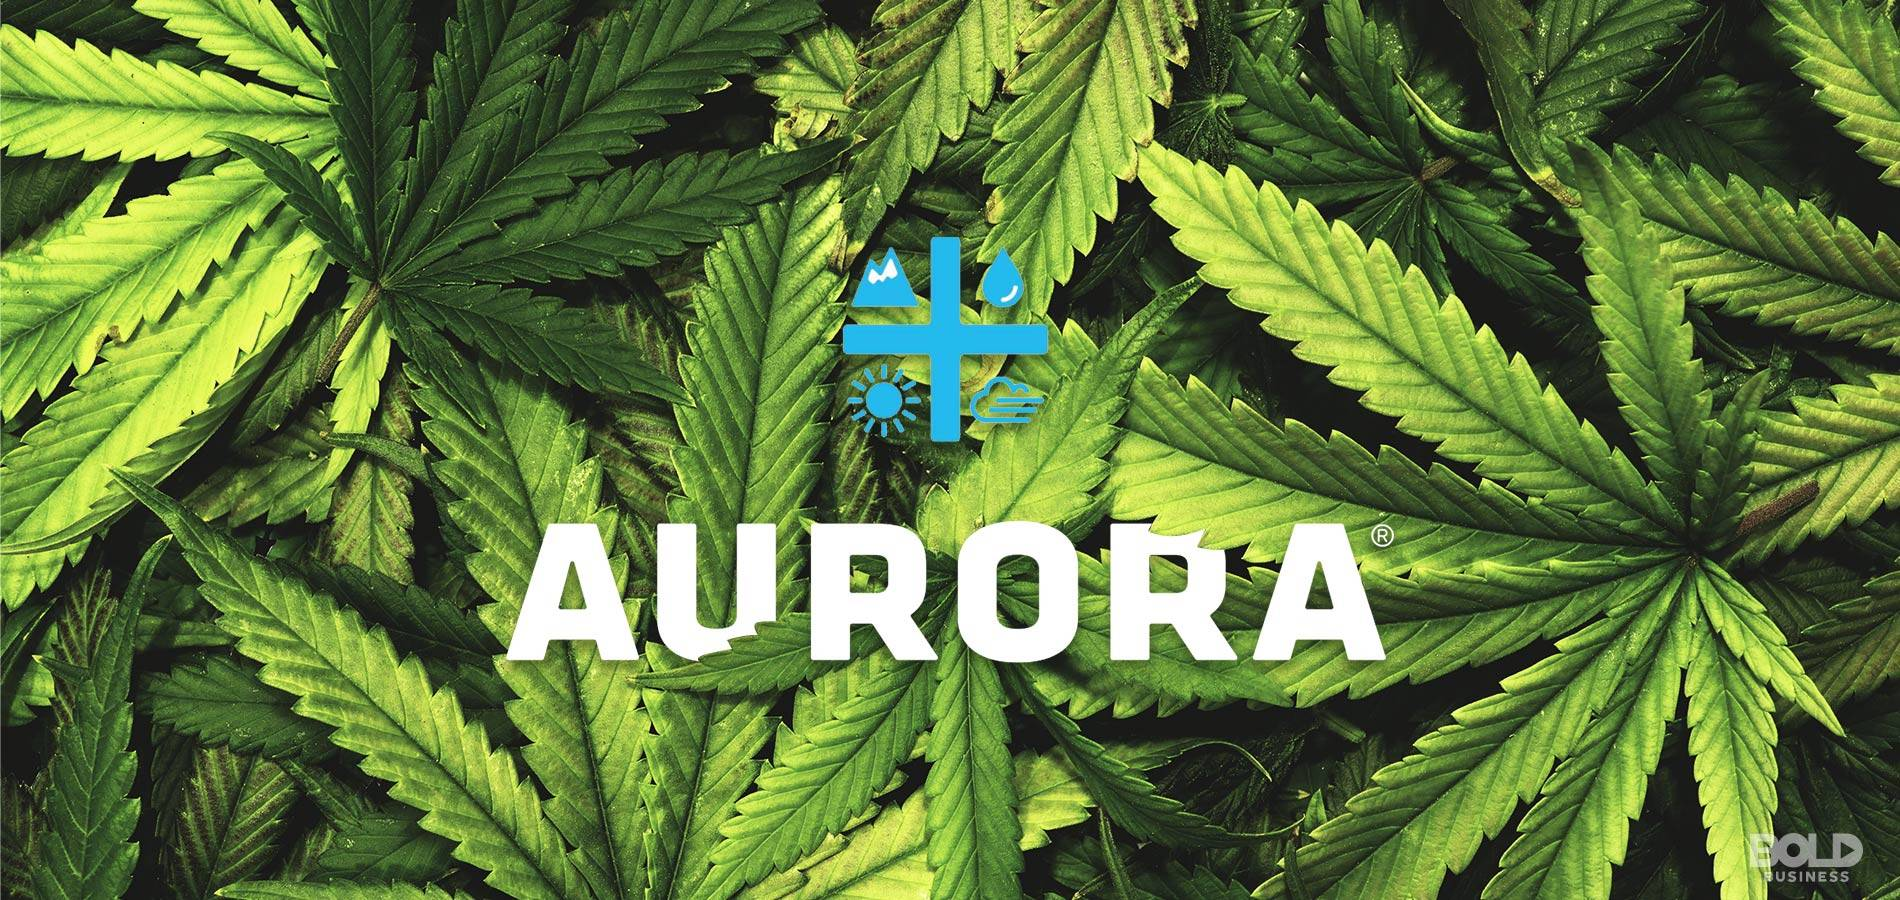 a photo of marijuana leaves and the logo of the company, Aurora Cannabis